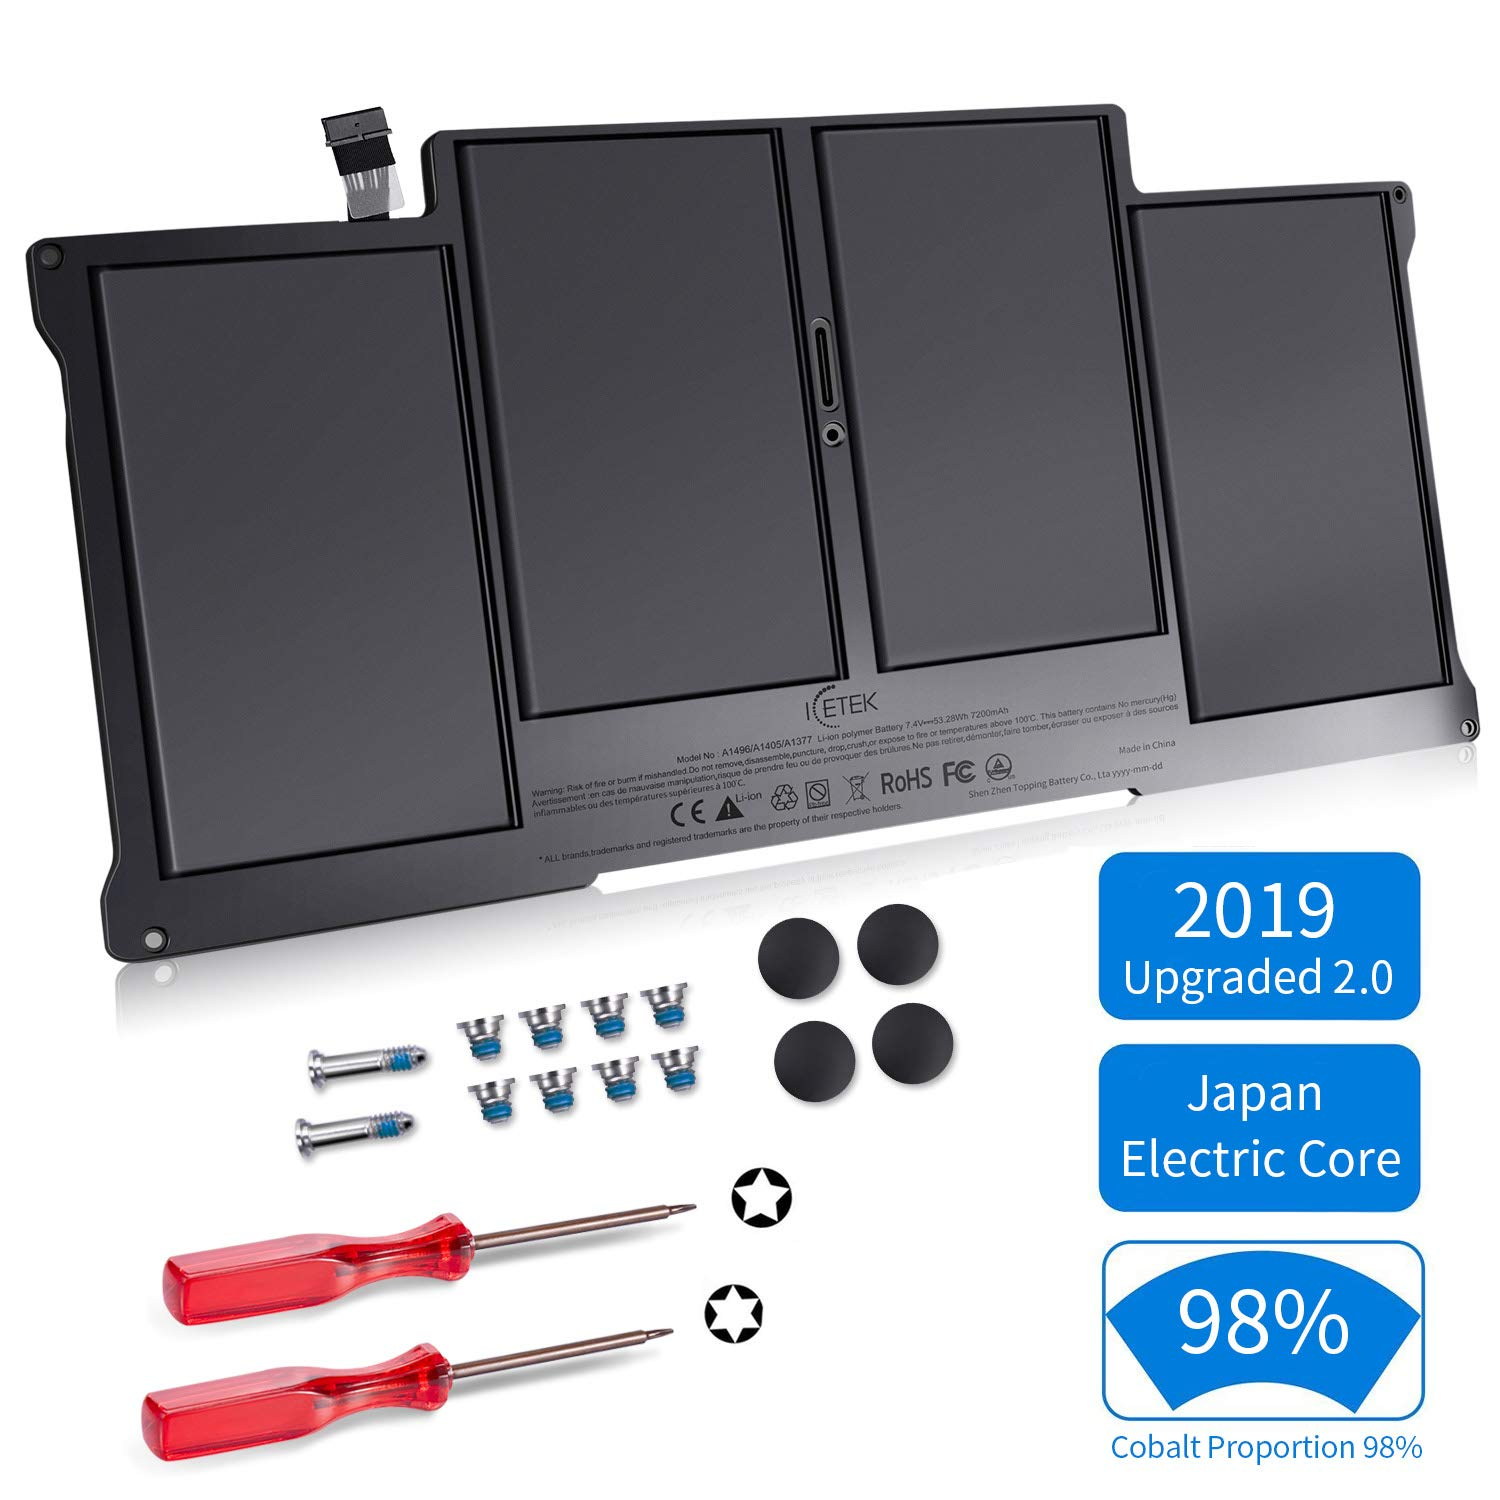 ICETEK Replacement Battery for MacBook Air 13 Inch A1466 A1369 [Japan Electric Core, 2019 Upgraded 2.0, Cobalt Proportion 98%] Late 2010 Early 2015 Version, fits A1496 A1377 A1405, 24 Months Warranty by ICETEK